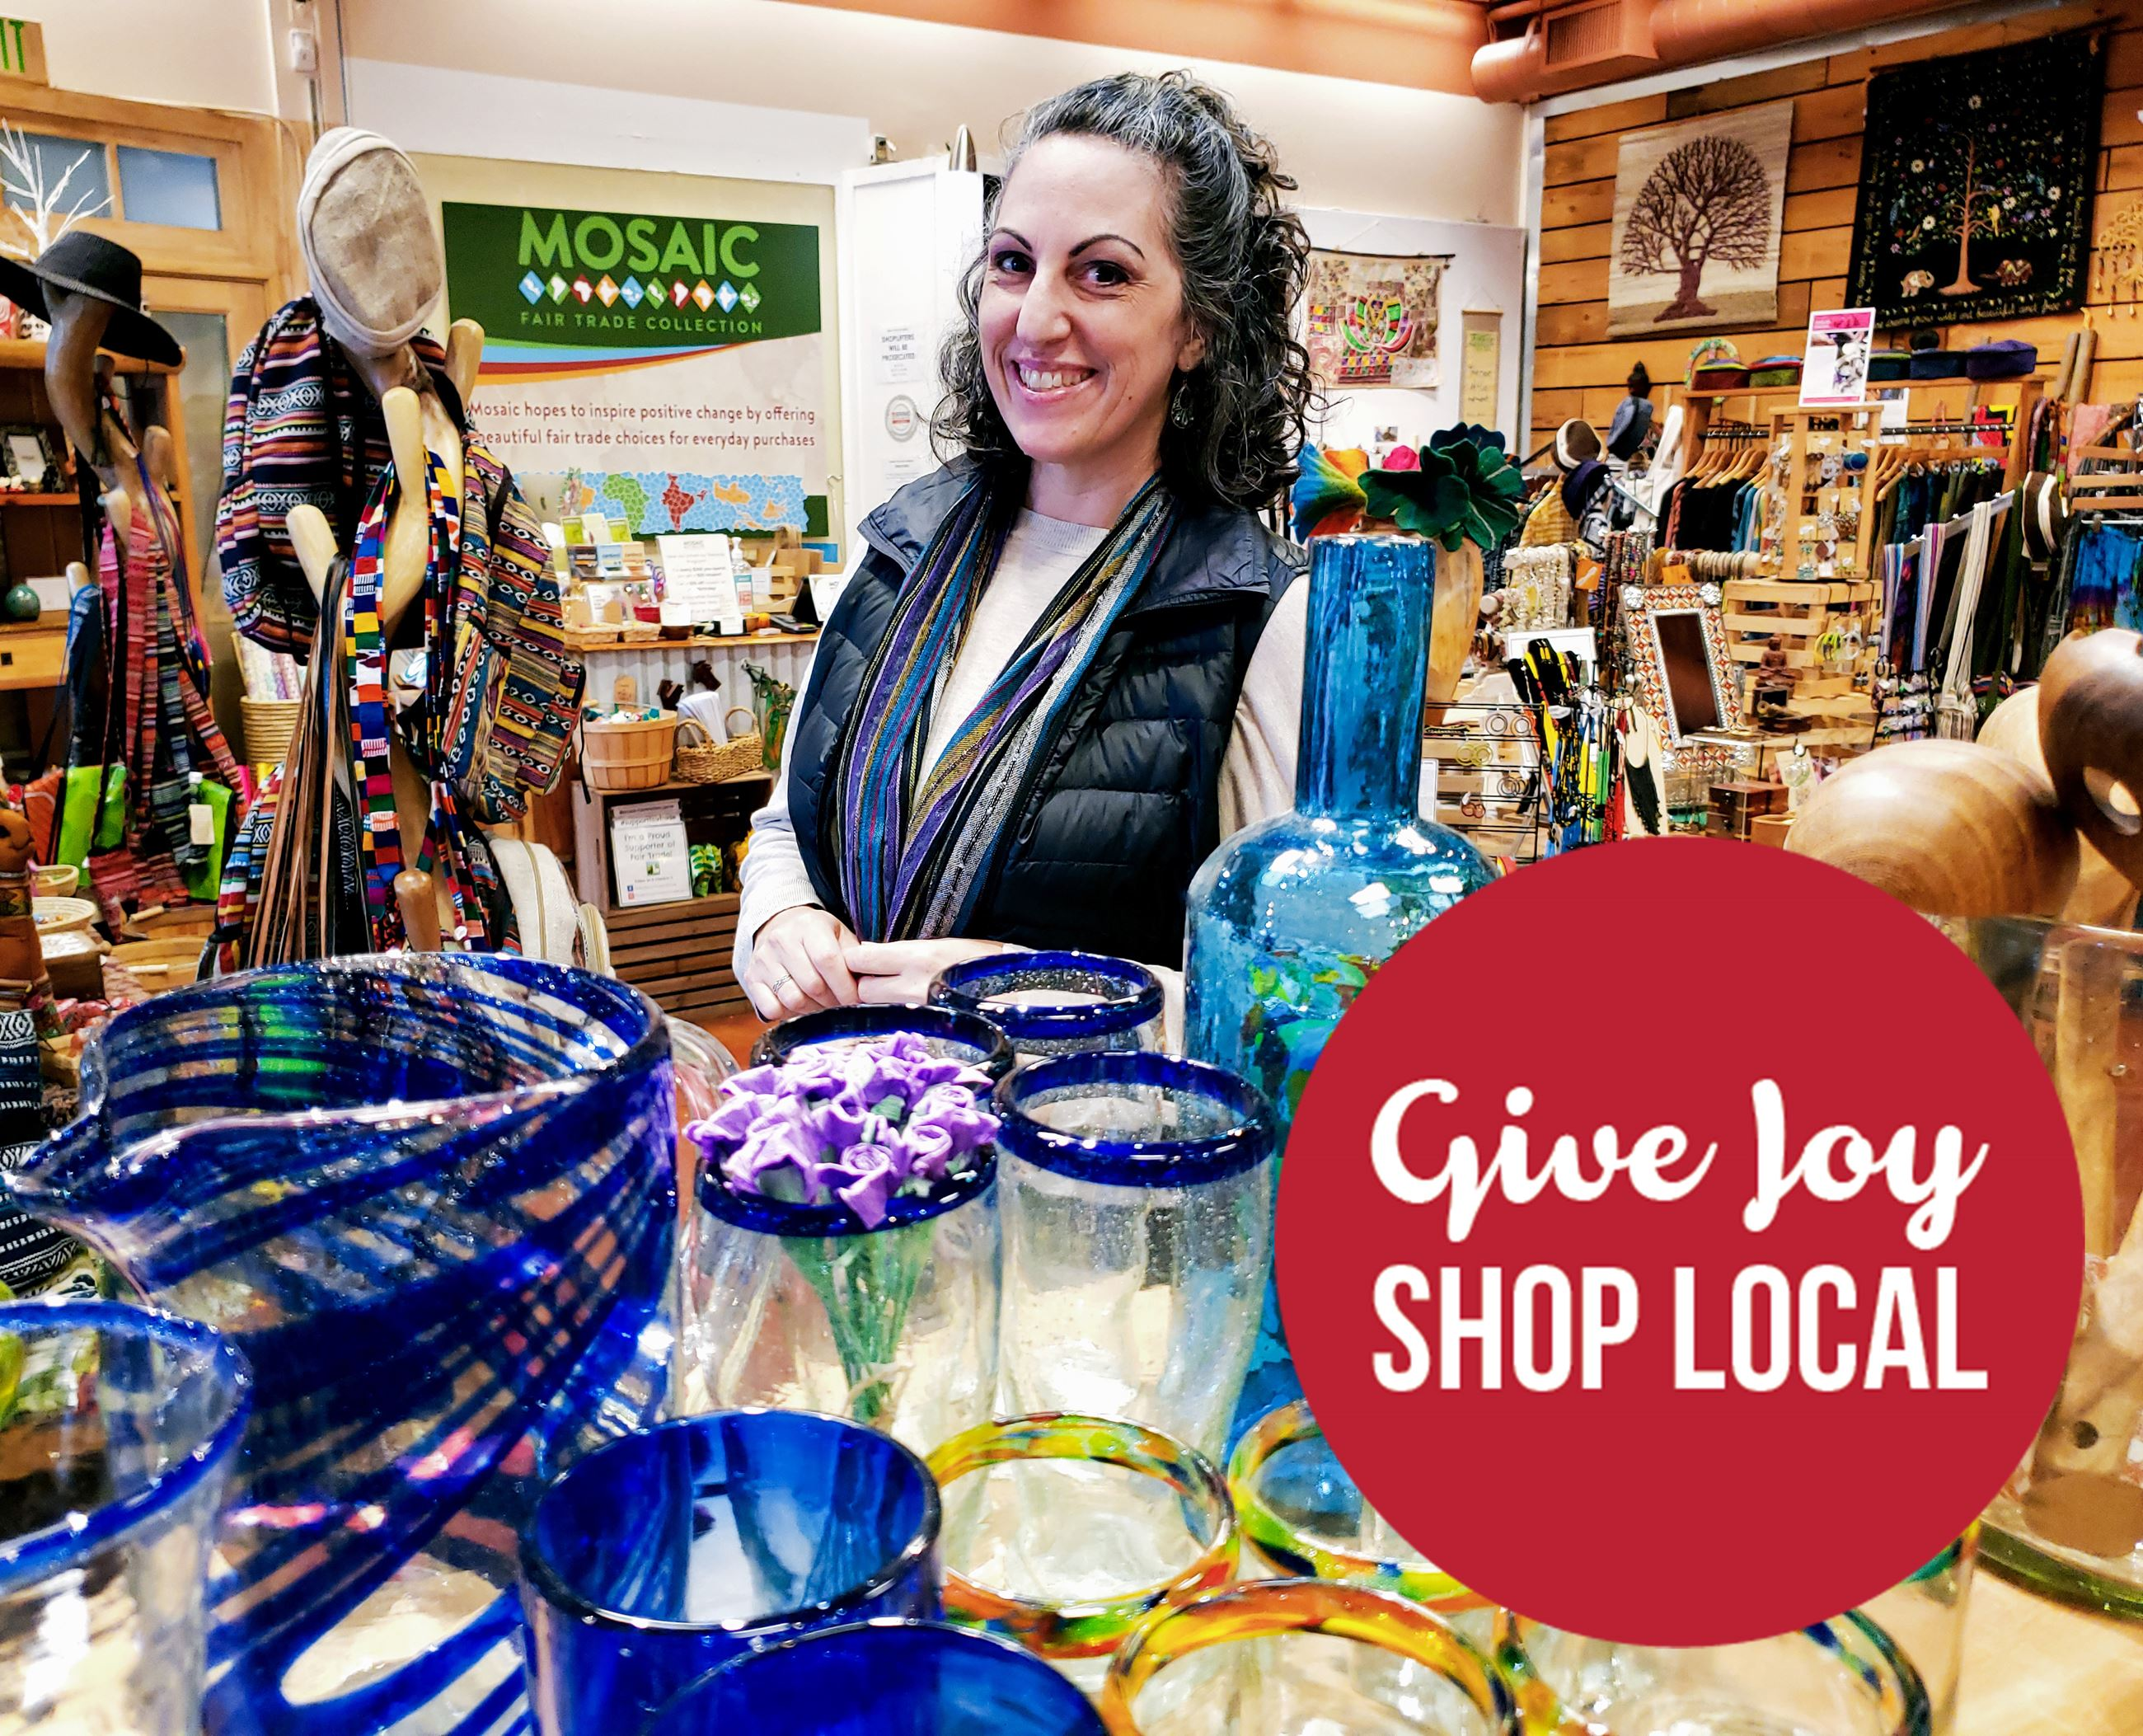 Give Joy: Shop Local. Mosaic Storefront Interior.